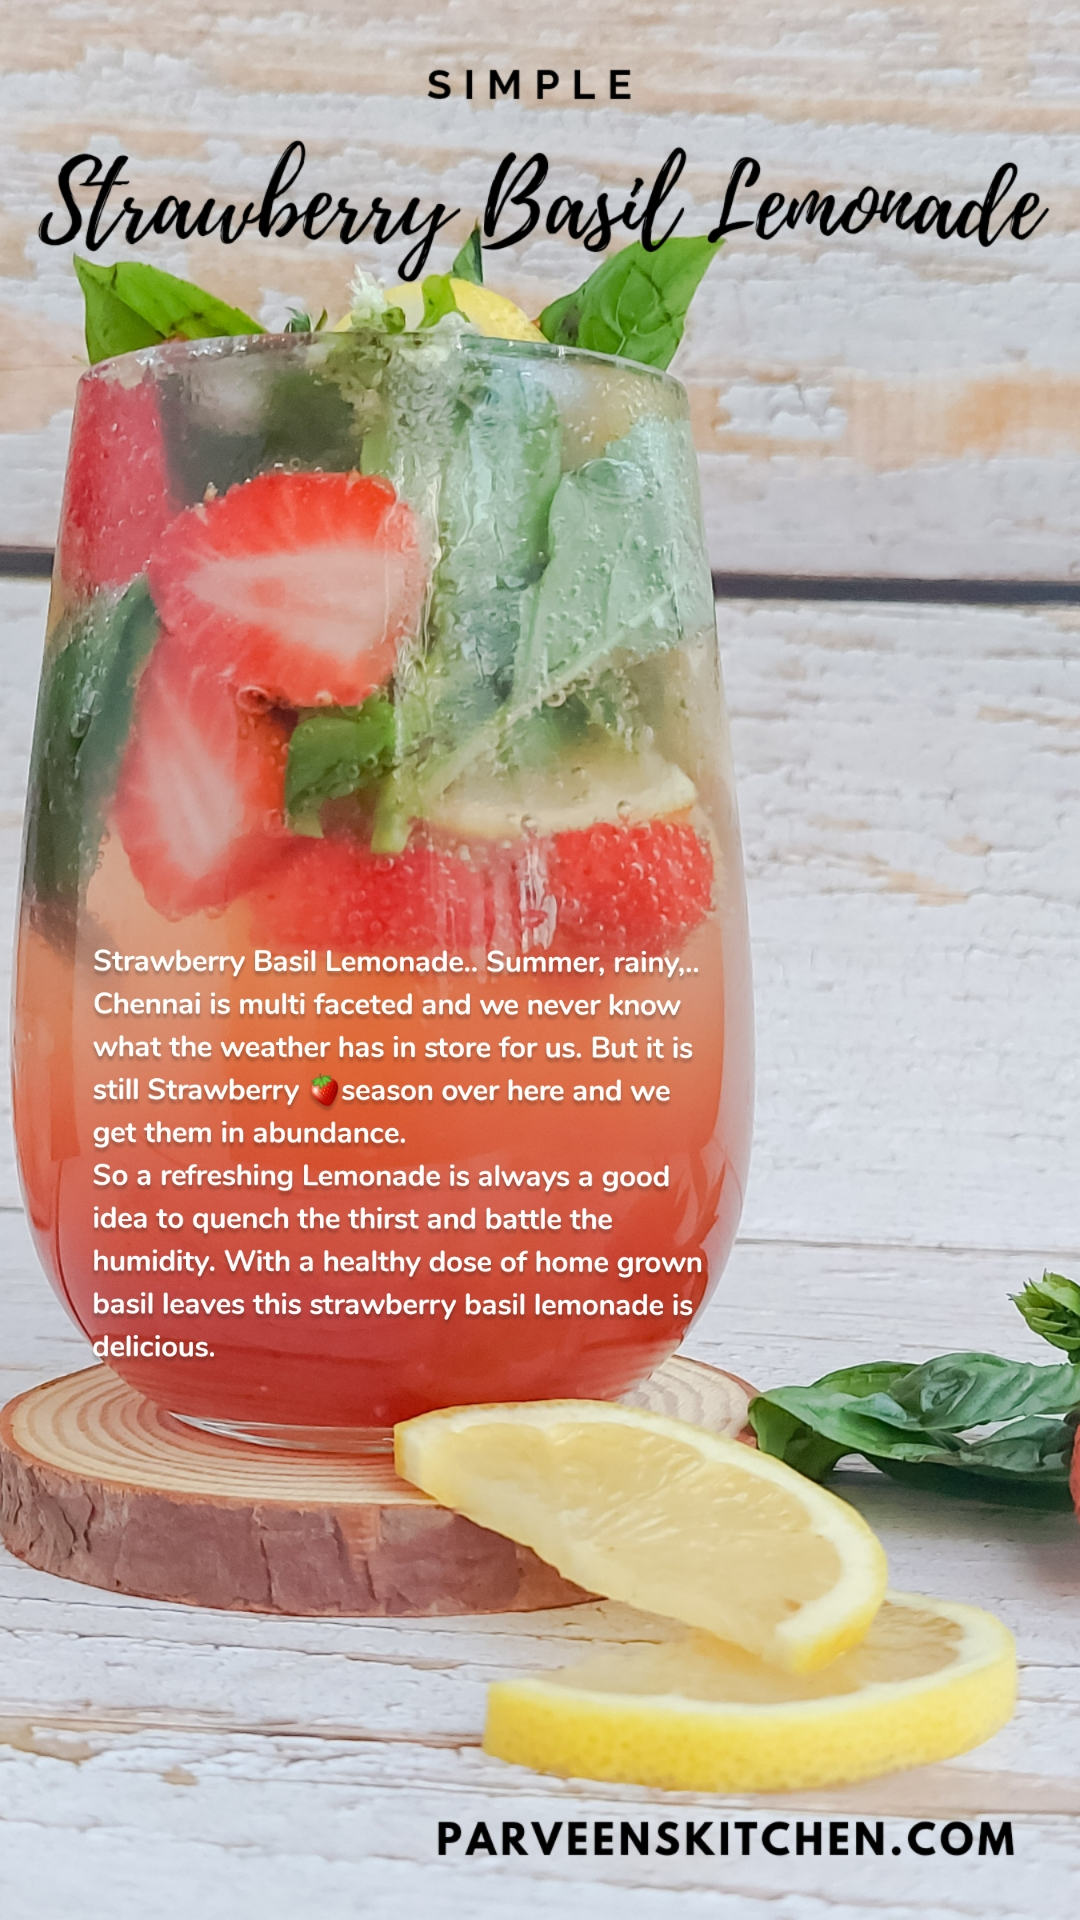 Strawberry Basil Lemonade.. Summer, rainy,.. Chennai is multi faceted and we never know what the weather has in store for us. But it is still Strawberry 🍓season over here and we get them in abundance.  So a refreshing Lemonade is always a good idea to quench the thirst and battle the humidity. With a healthy dose of home grown basil leaves this strawberry basil lemonade is delicious.